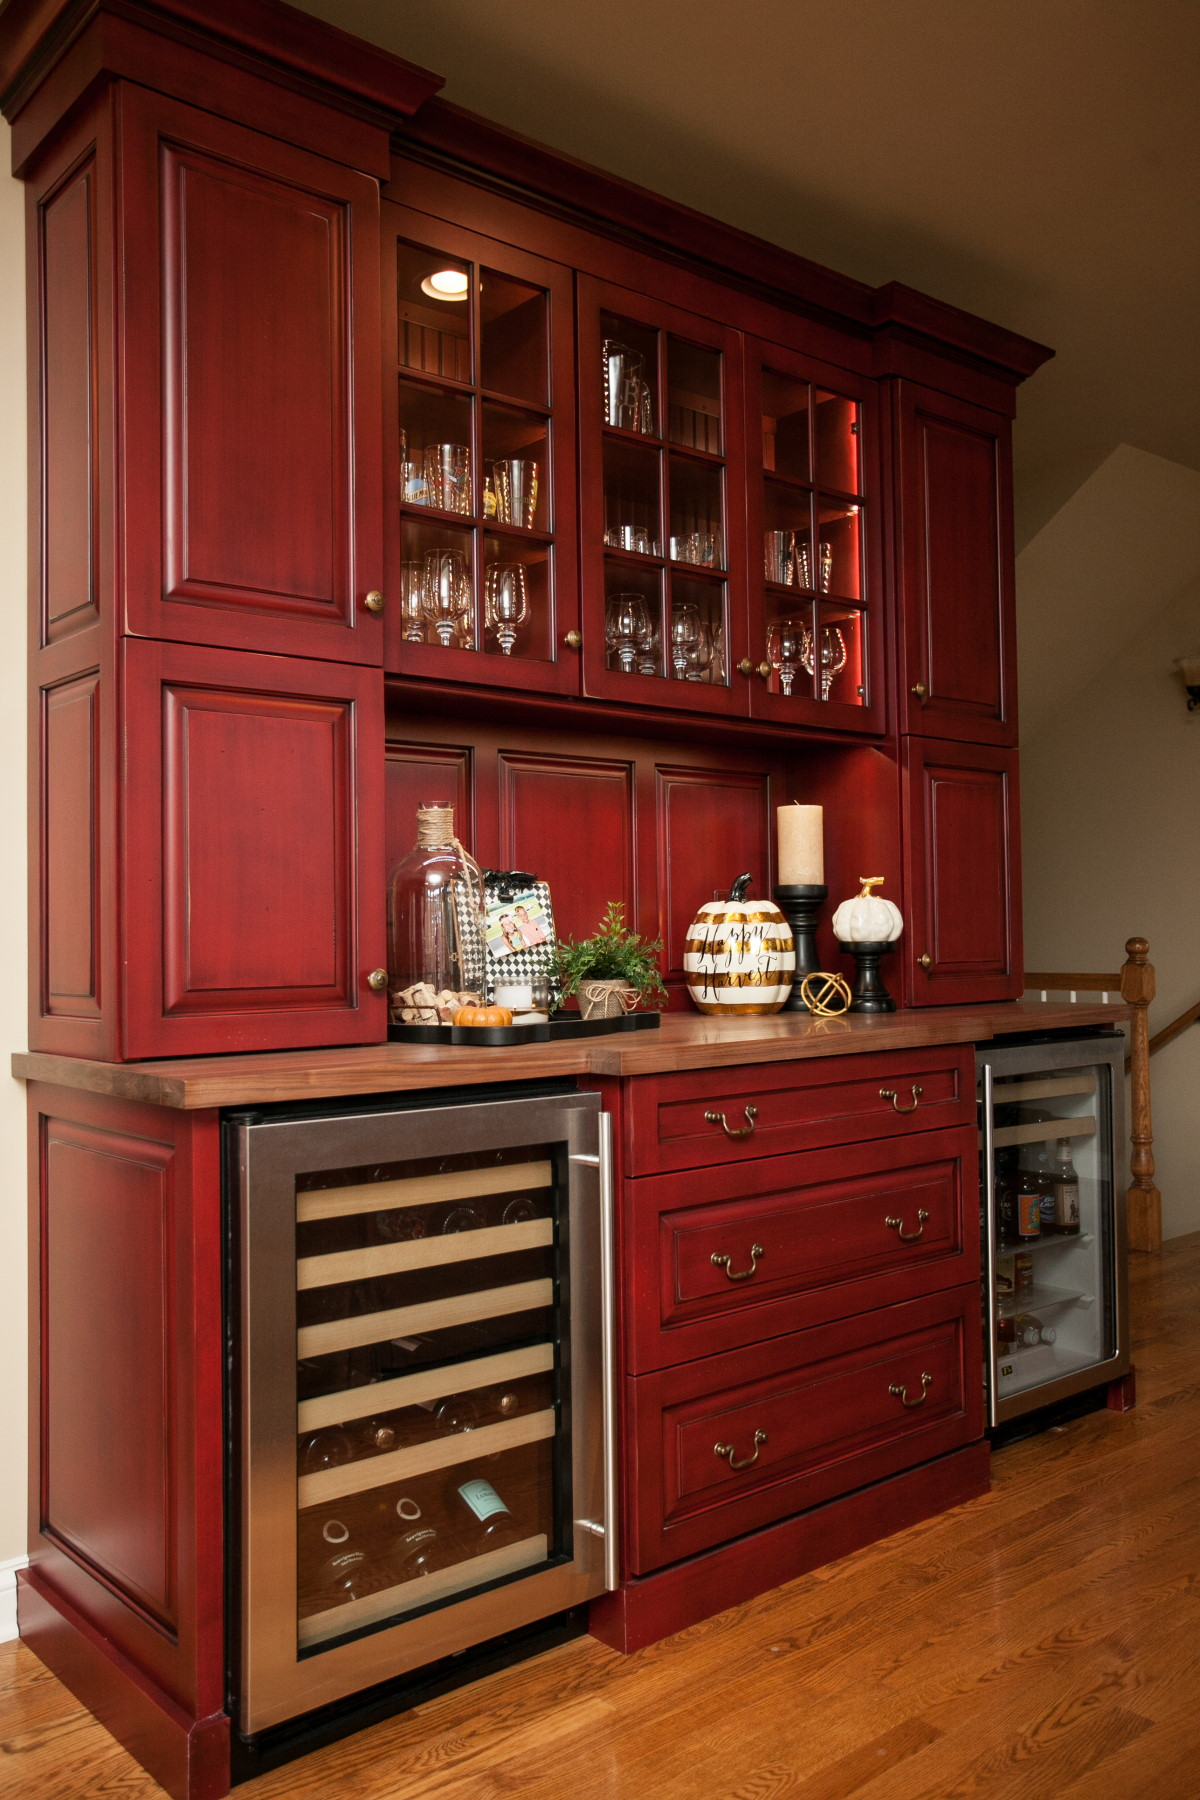 Red Kitchen Cabinets With Black Glaze Image And Shower